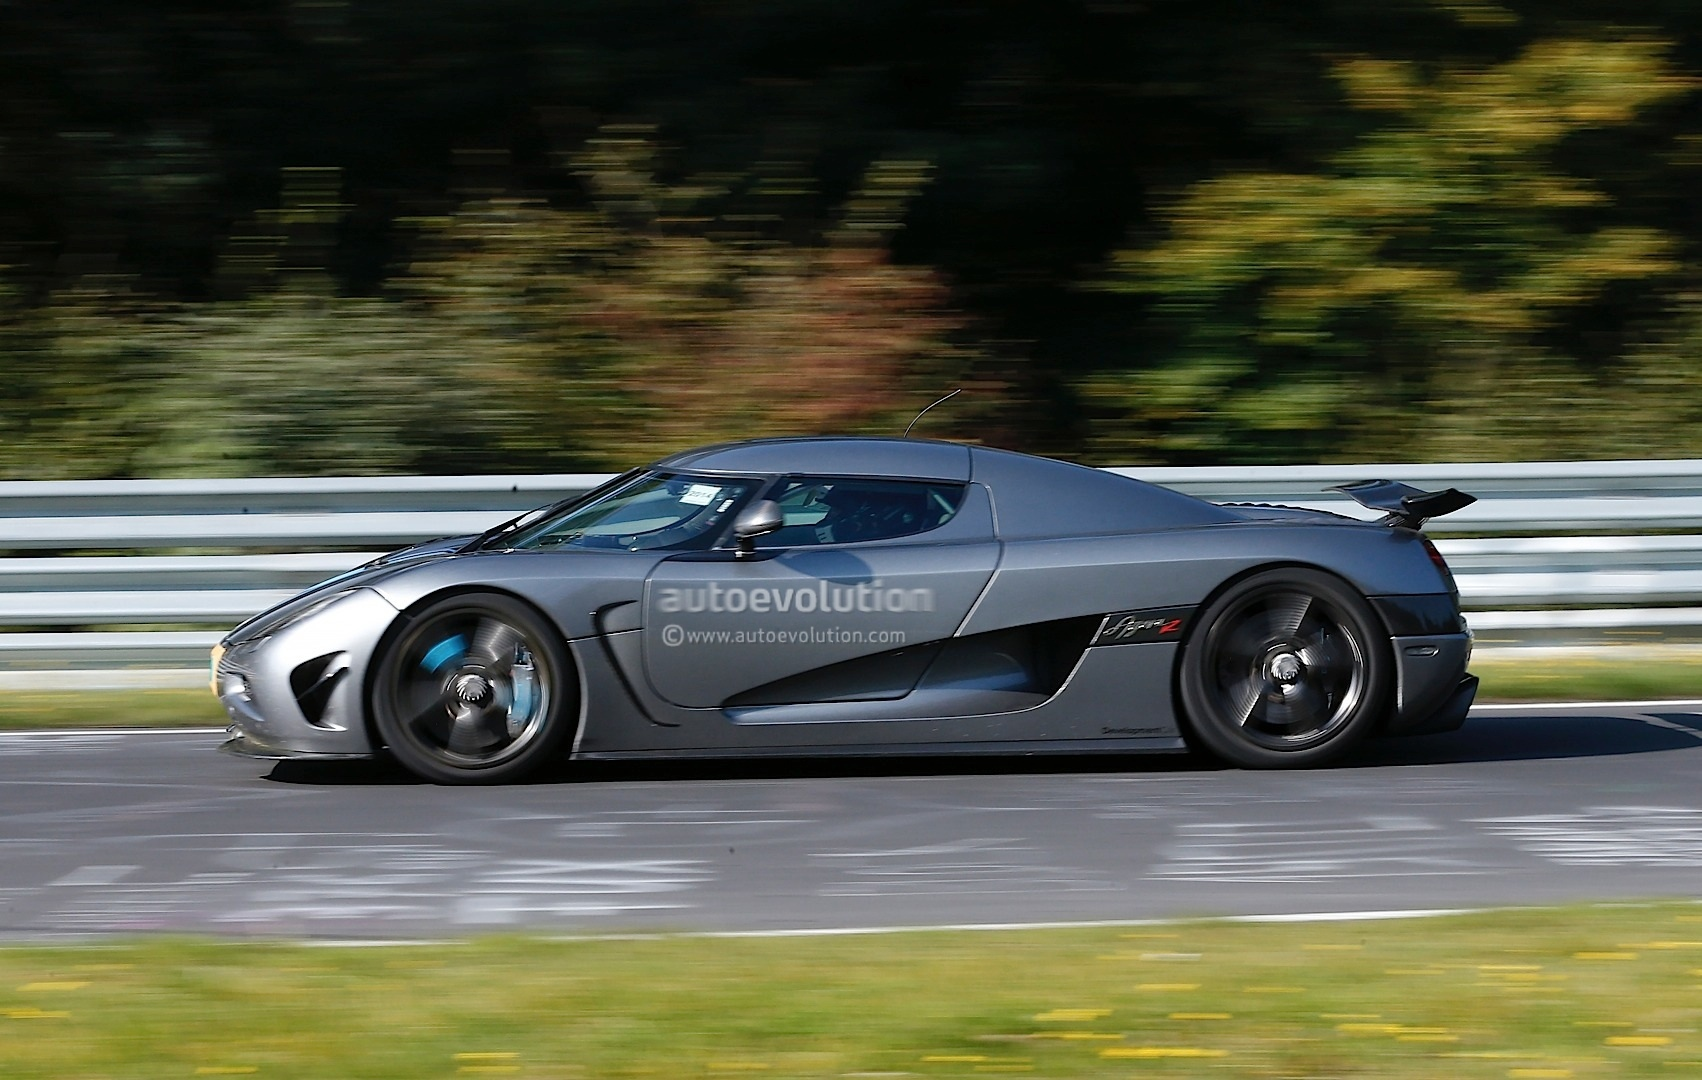 Volkswagen Group Latest Models >> New Koenigsegg Agera Development Car Has Serious Crash on ...